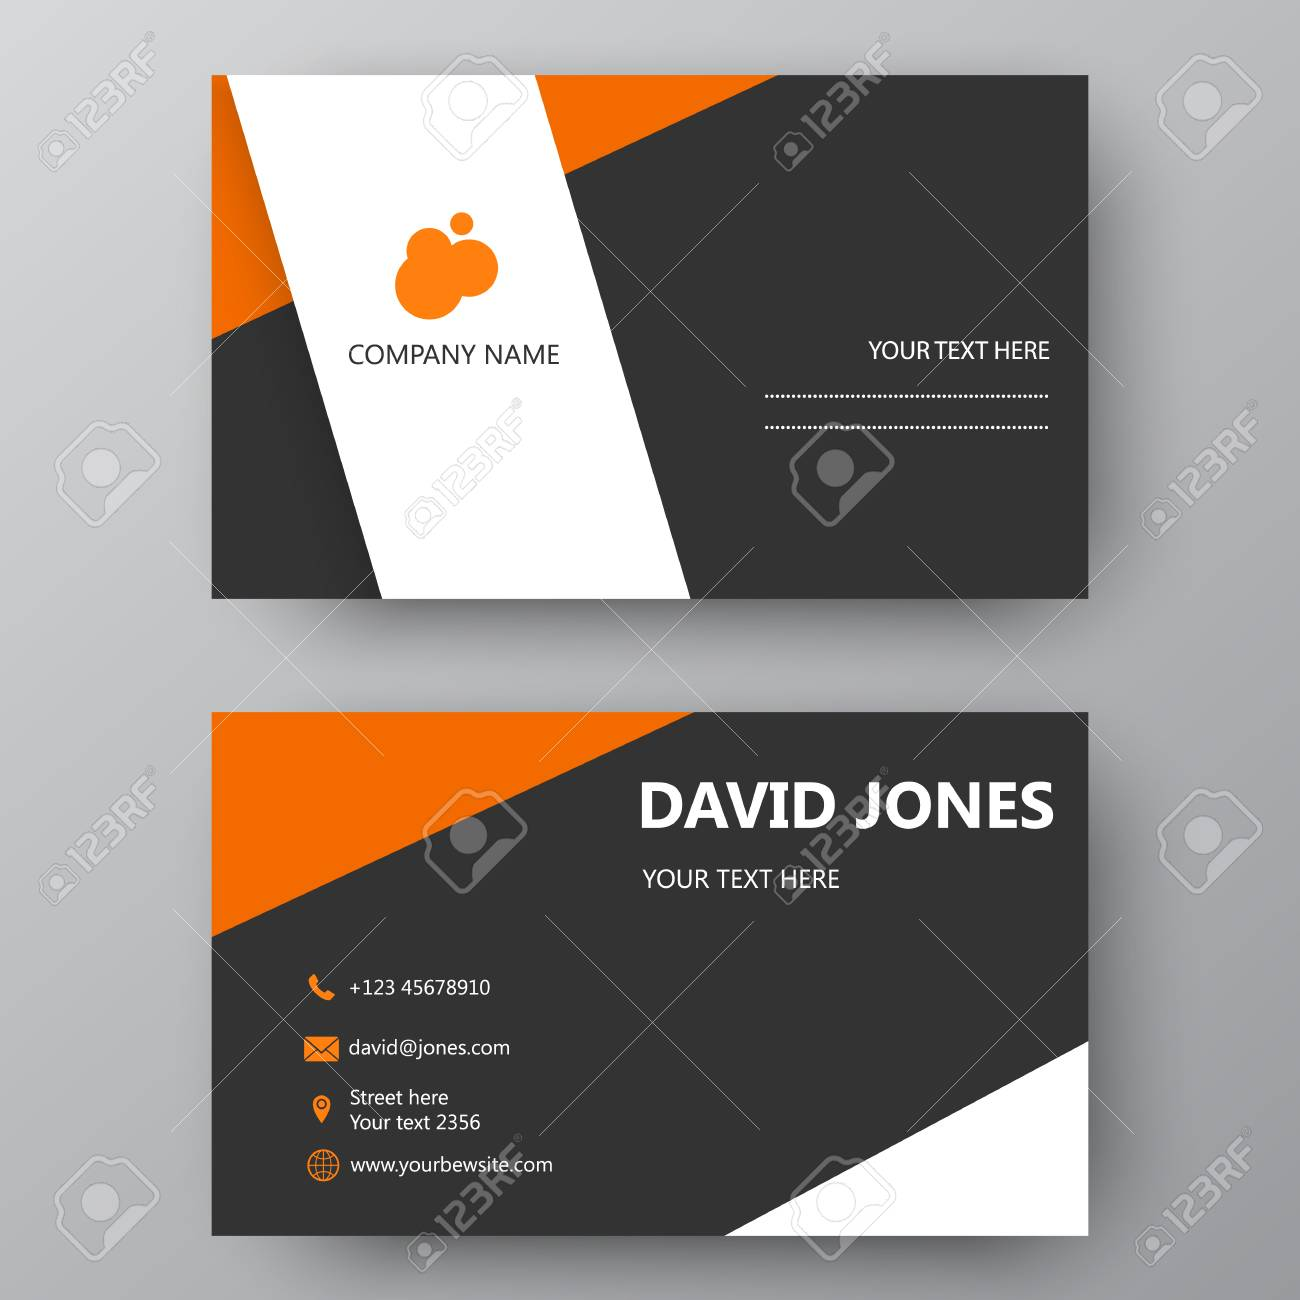 Business Card Template Visiting Card For Business And Personal - Complimentary card template